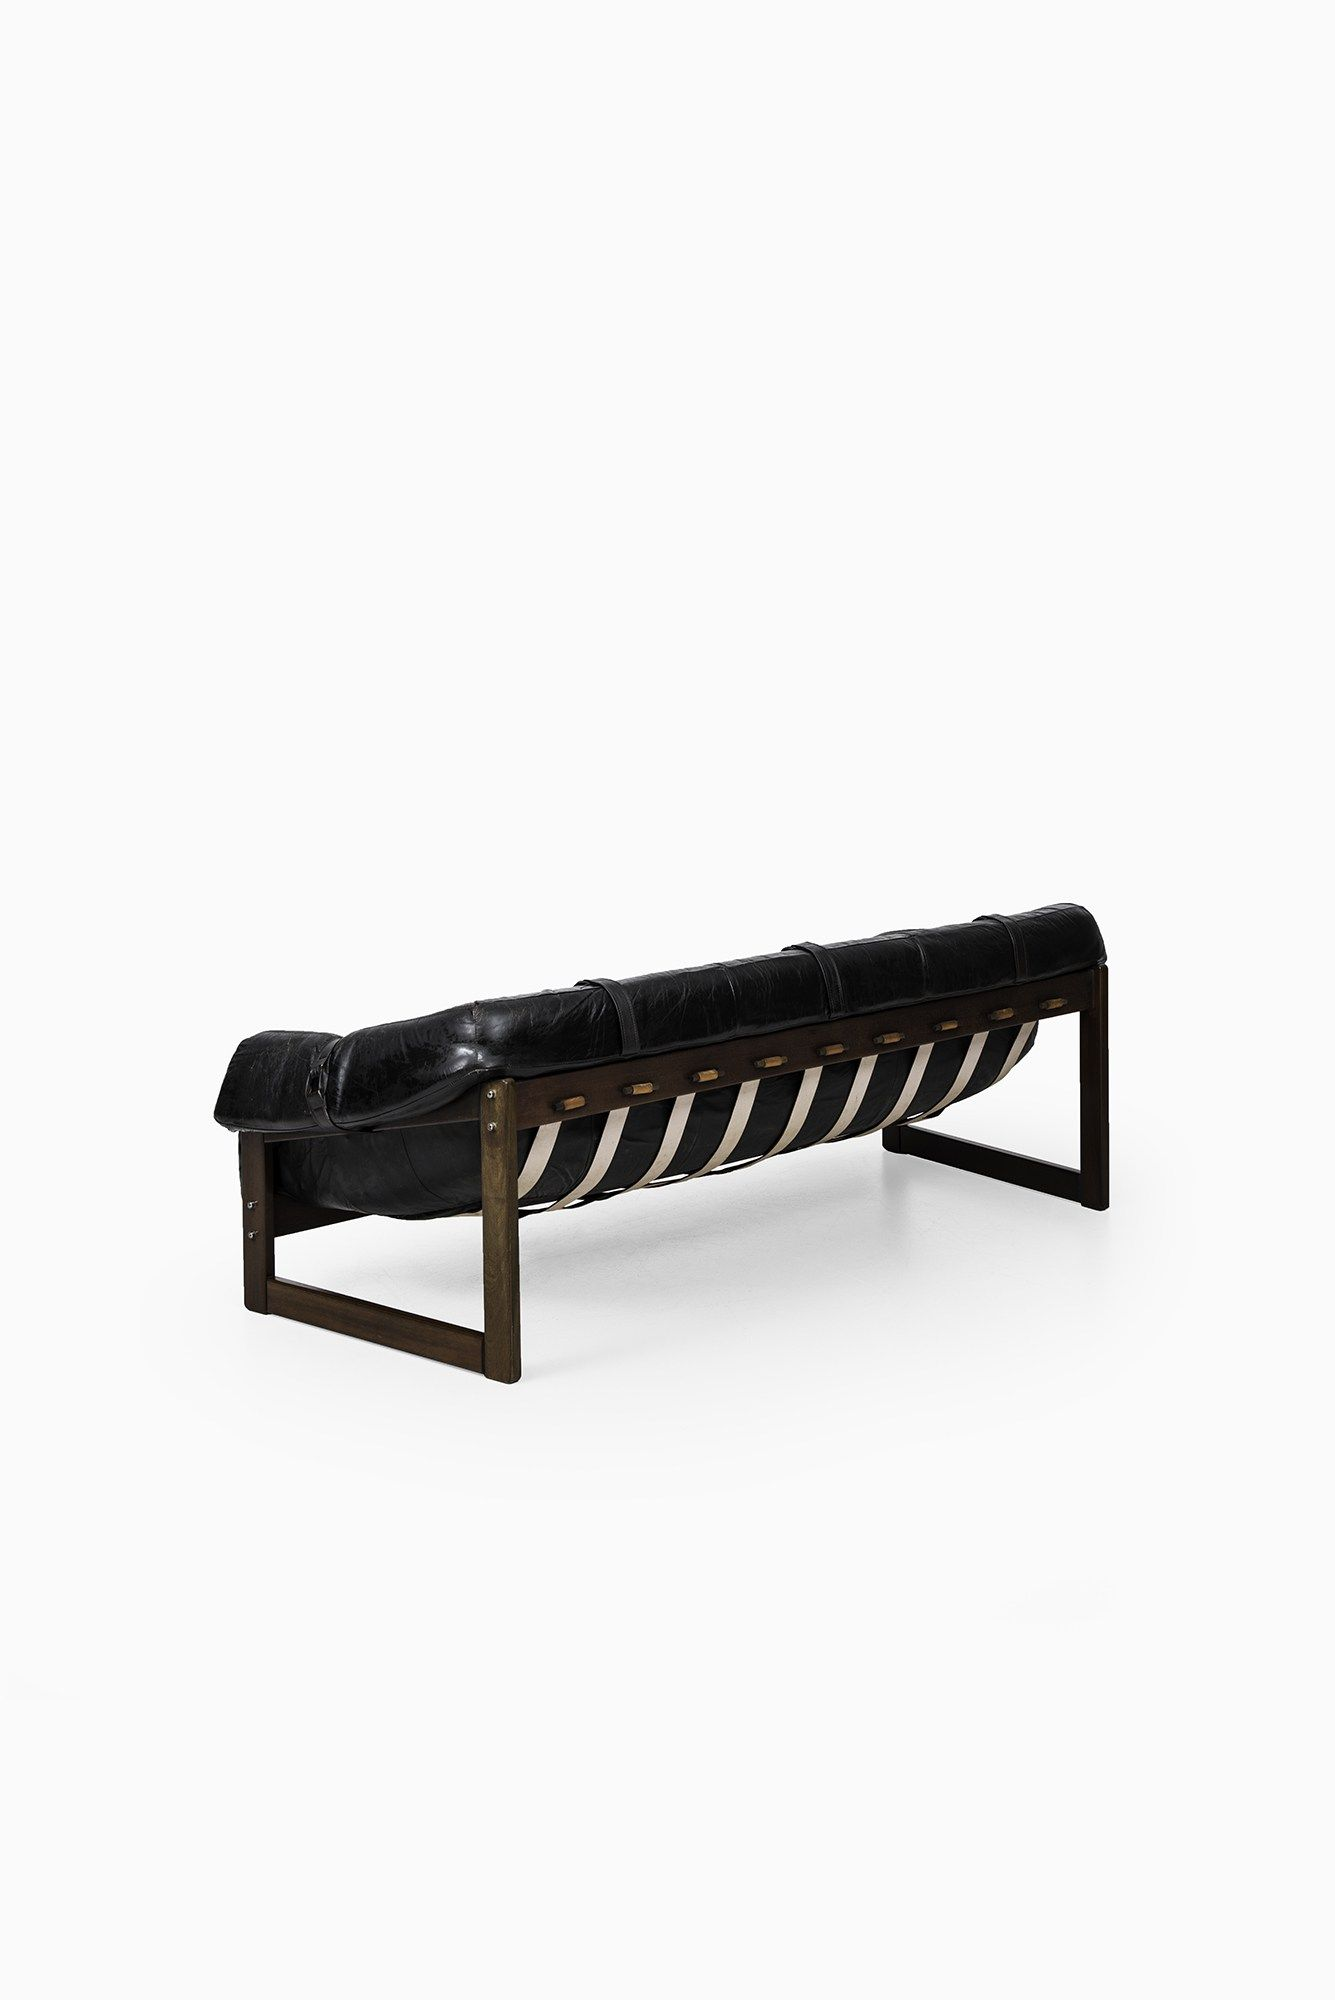 Percival Lafer 3-seat sofa by Lafer MP at Studio Schalling